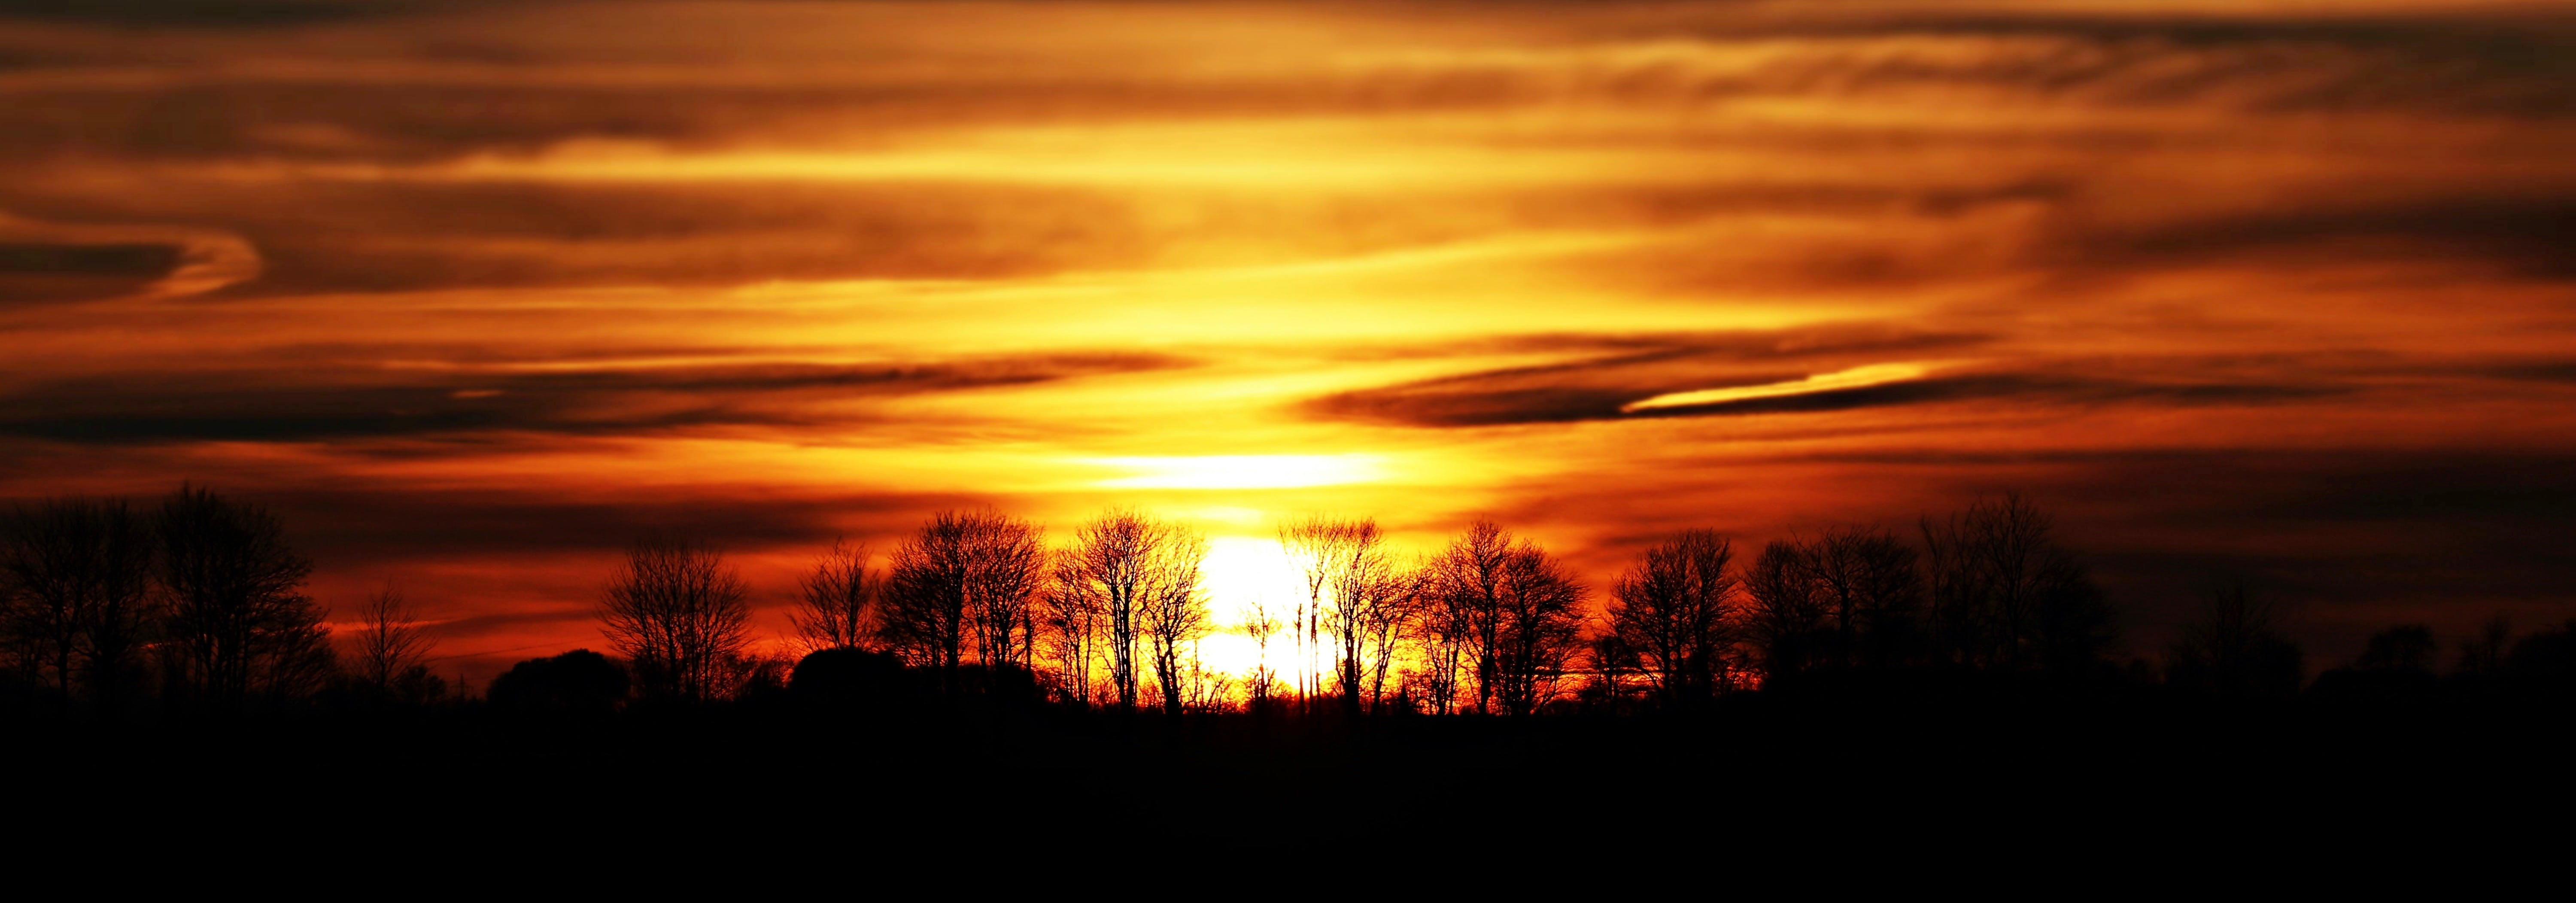 Scenic View of Silhouette Landscape Against Sunset Sky